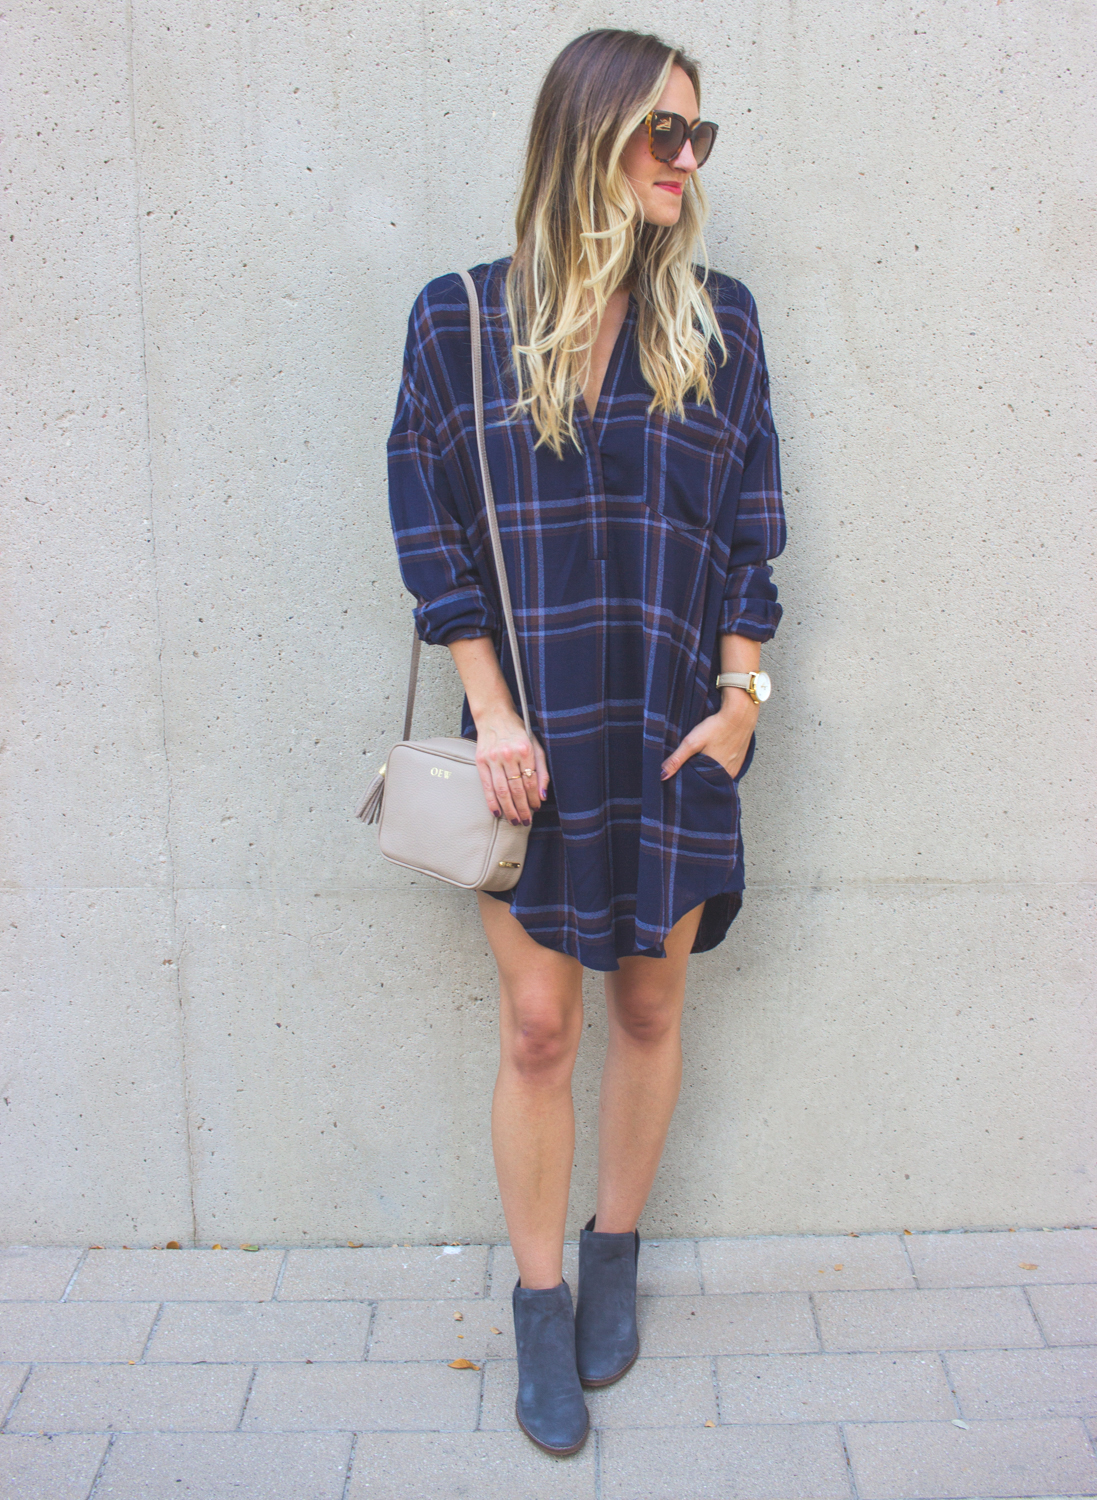 livvyland-blog-olivia-watson-plaid-flannel-shirt-shift-dress-dolce-vita-tesse-blue-suede-ankle-booties-navy-3